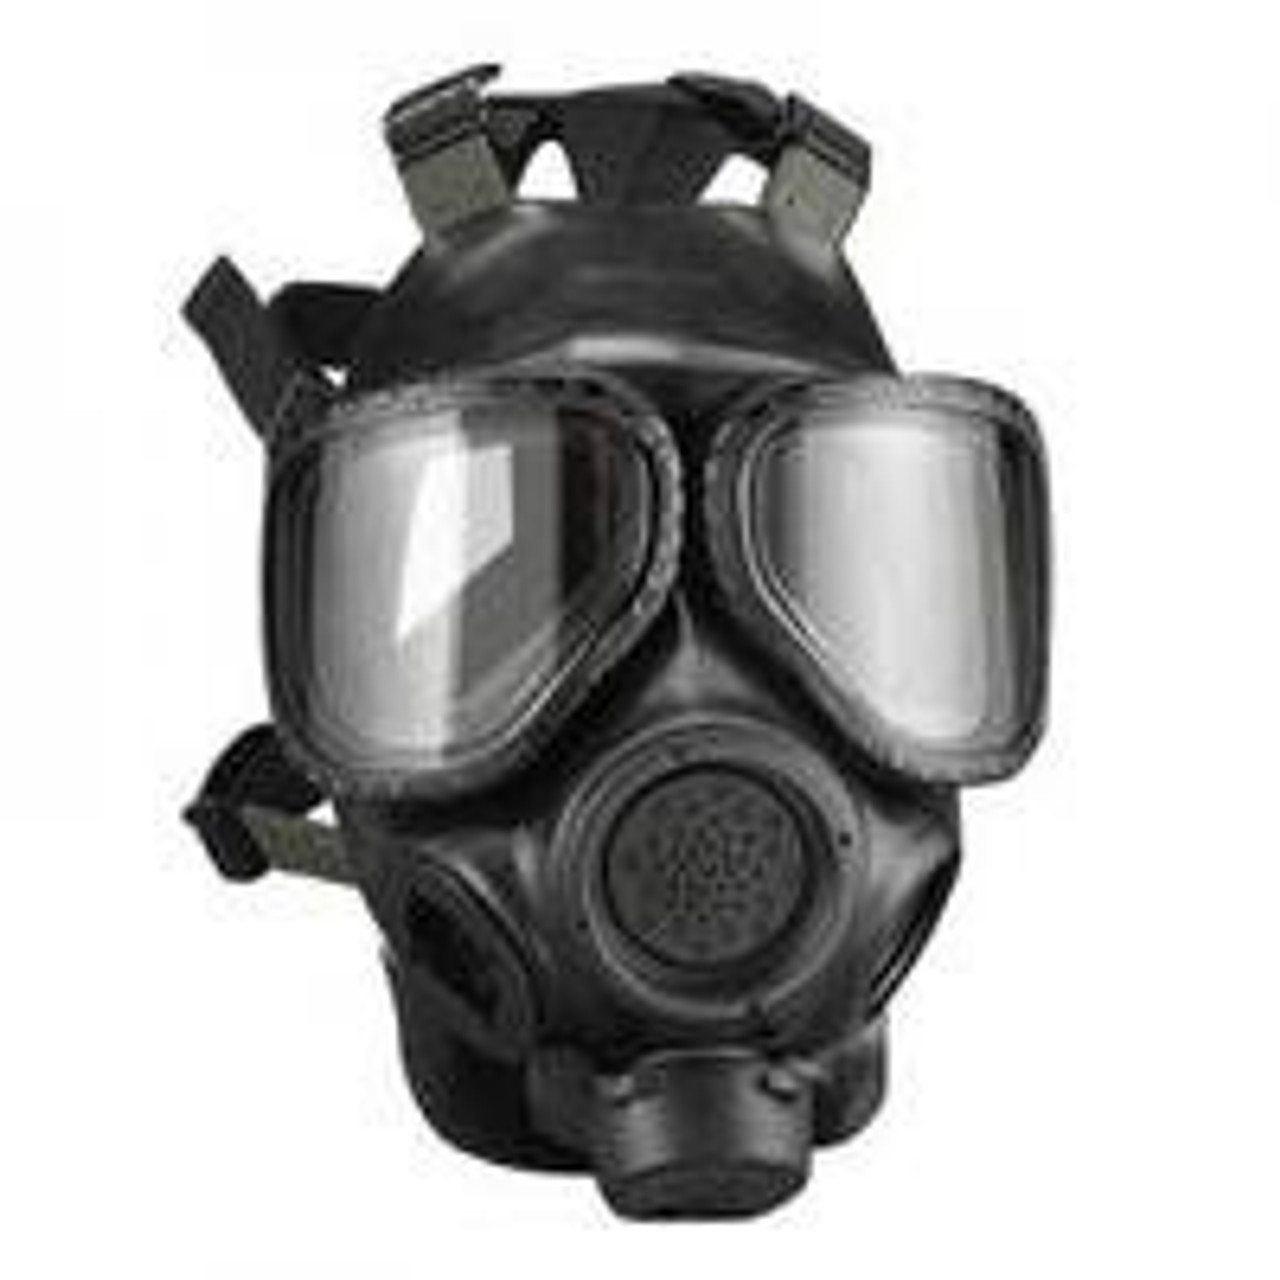 Biological/Chemical Warfare Protection